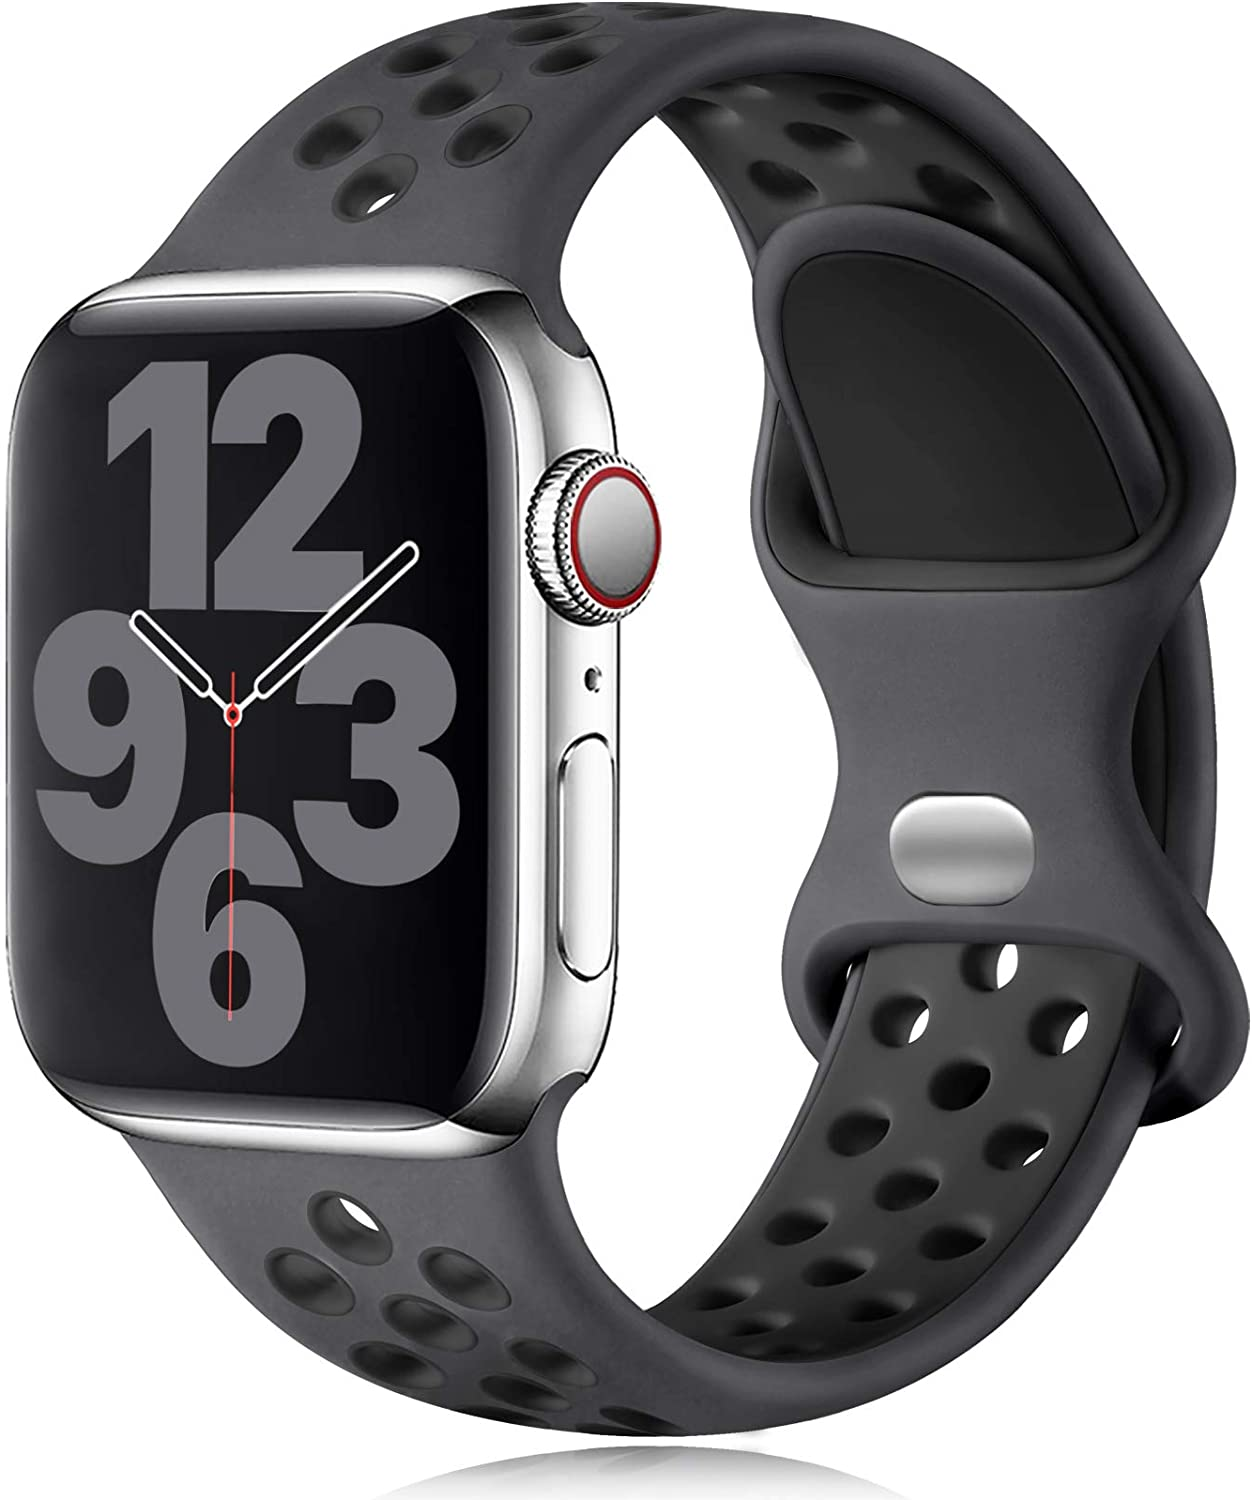 Vcegari Sports Band Compatible with Apple Watch 42mm 44mm, Soft Breathable Silicone Strap for iWatch SE Series 6 5 4 3 2 1, Charcoal/Black M/L